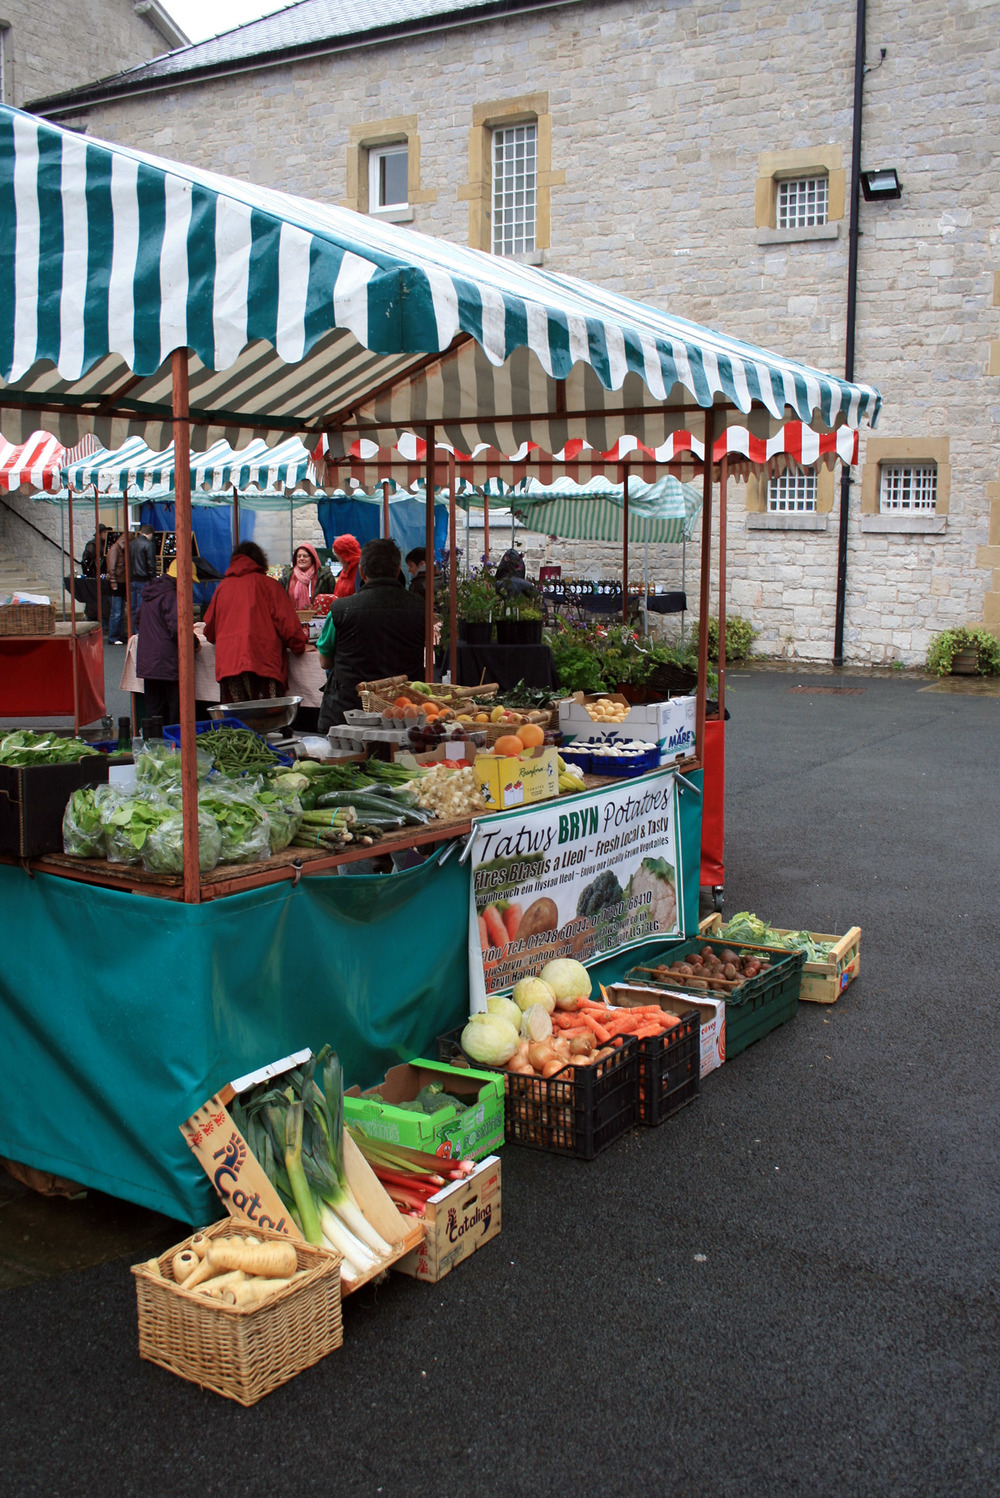 Weekly or monthly markets can attract locals and visitor to your town. Where do these take place?